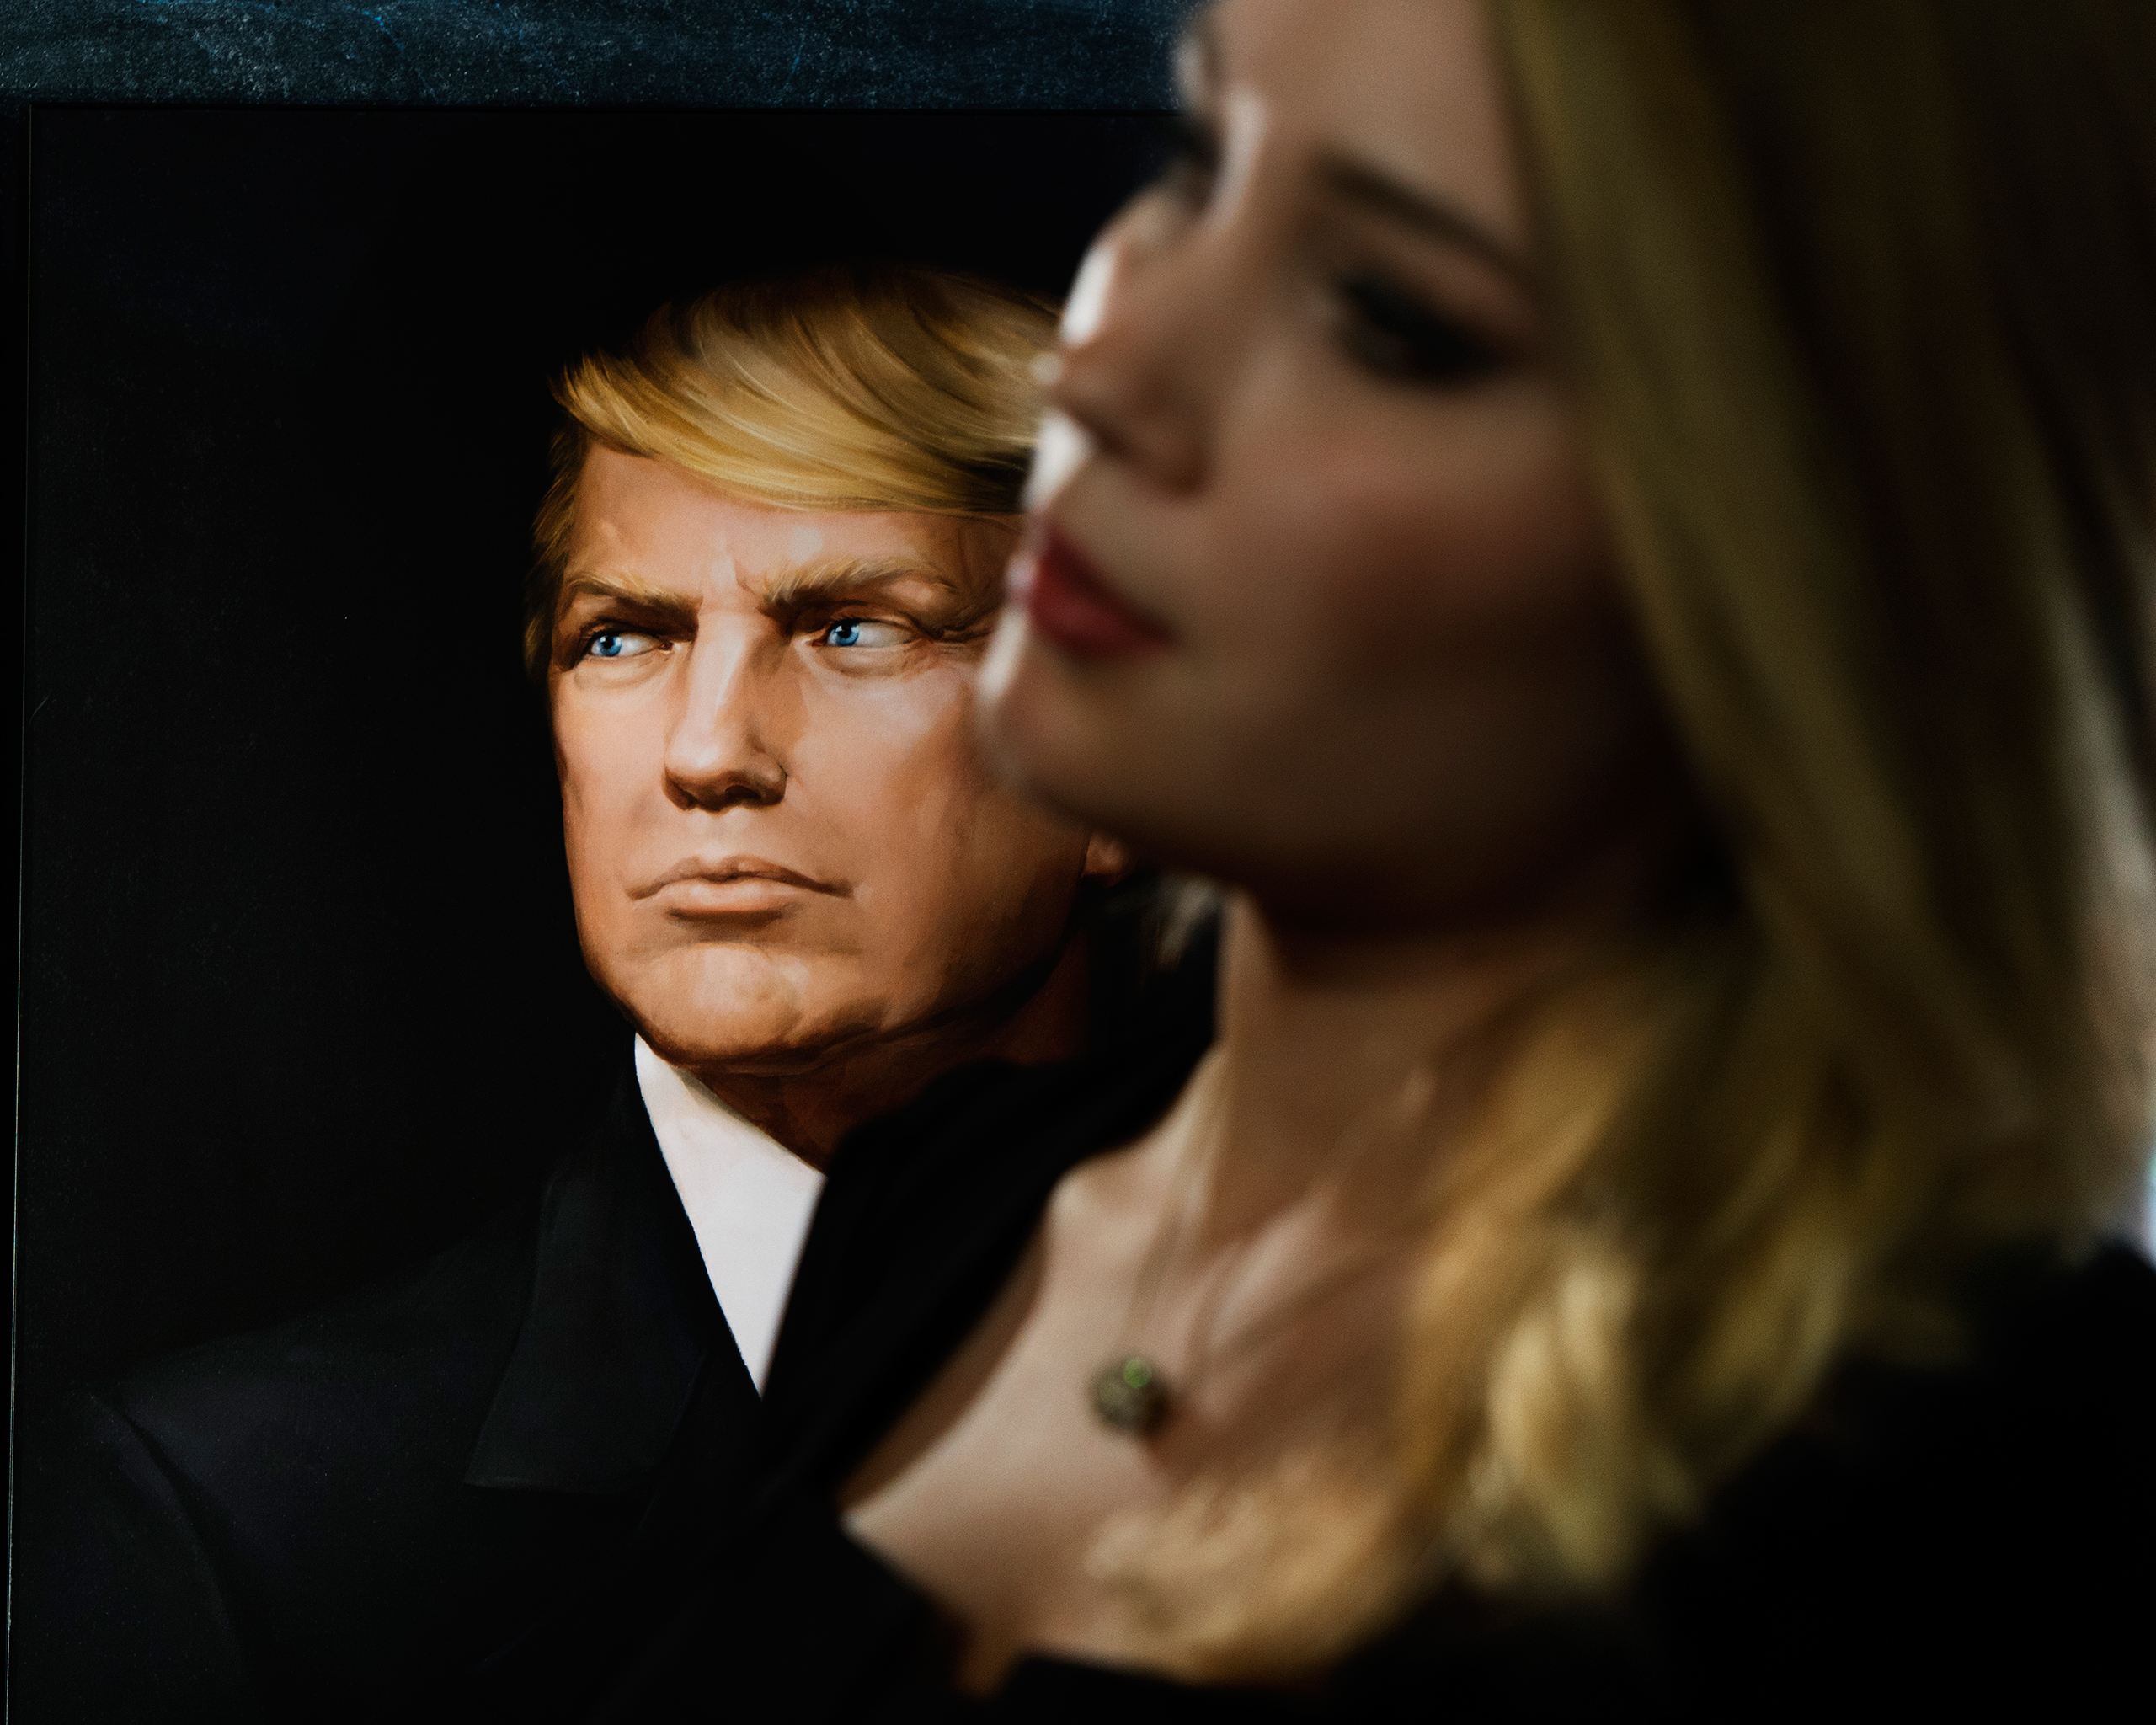 A portrait of U.S. President Donald Trump at an event organized by Maria Katasonova and TzarGrad TV on the occasion of Trump's inauguration in Moscow on Jan. 20, 2017. Katasonova, was a candidate MP in the last Duma election.